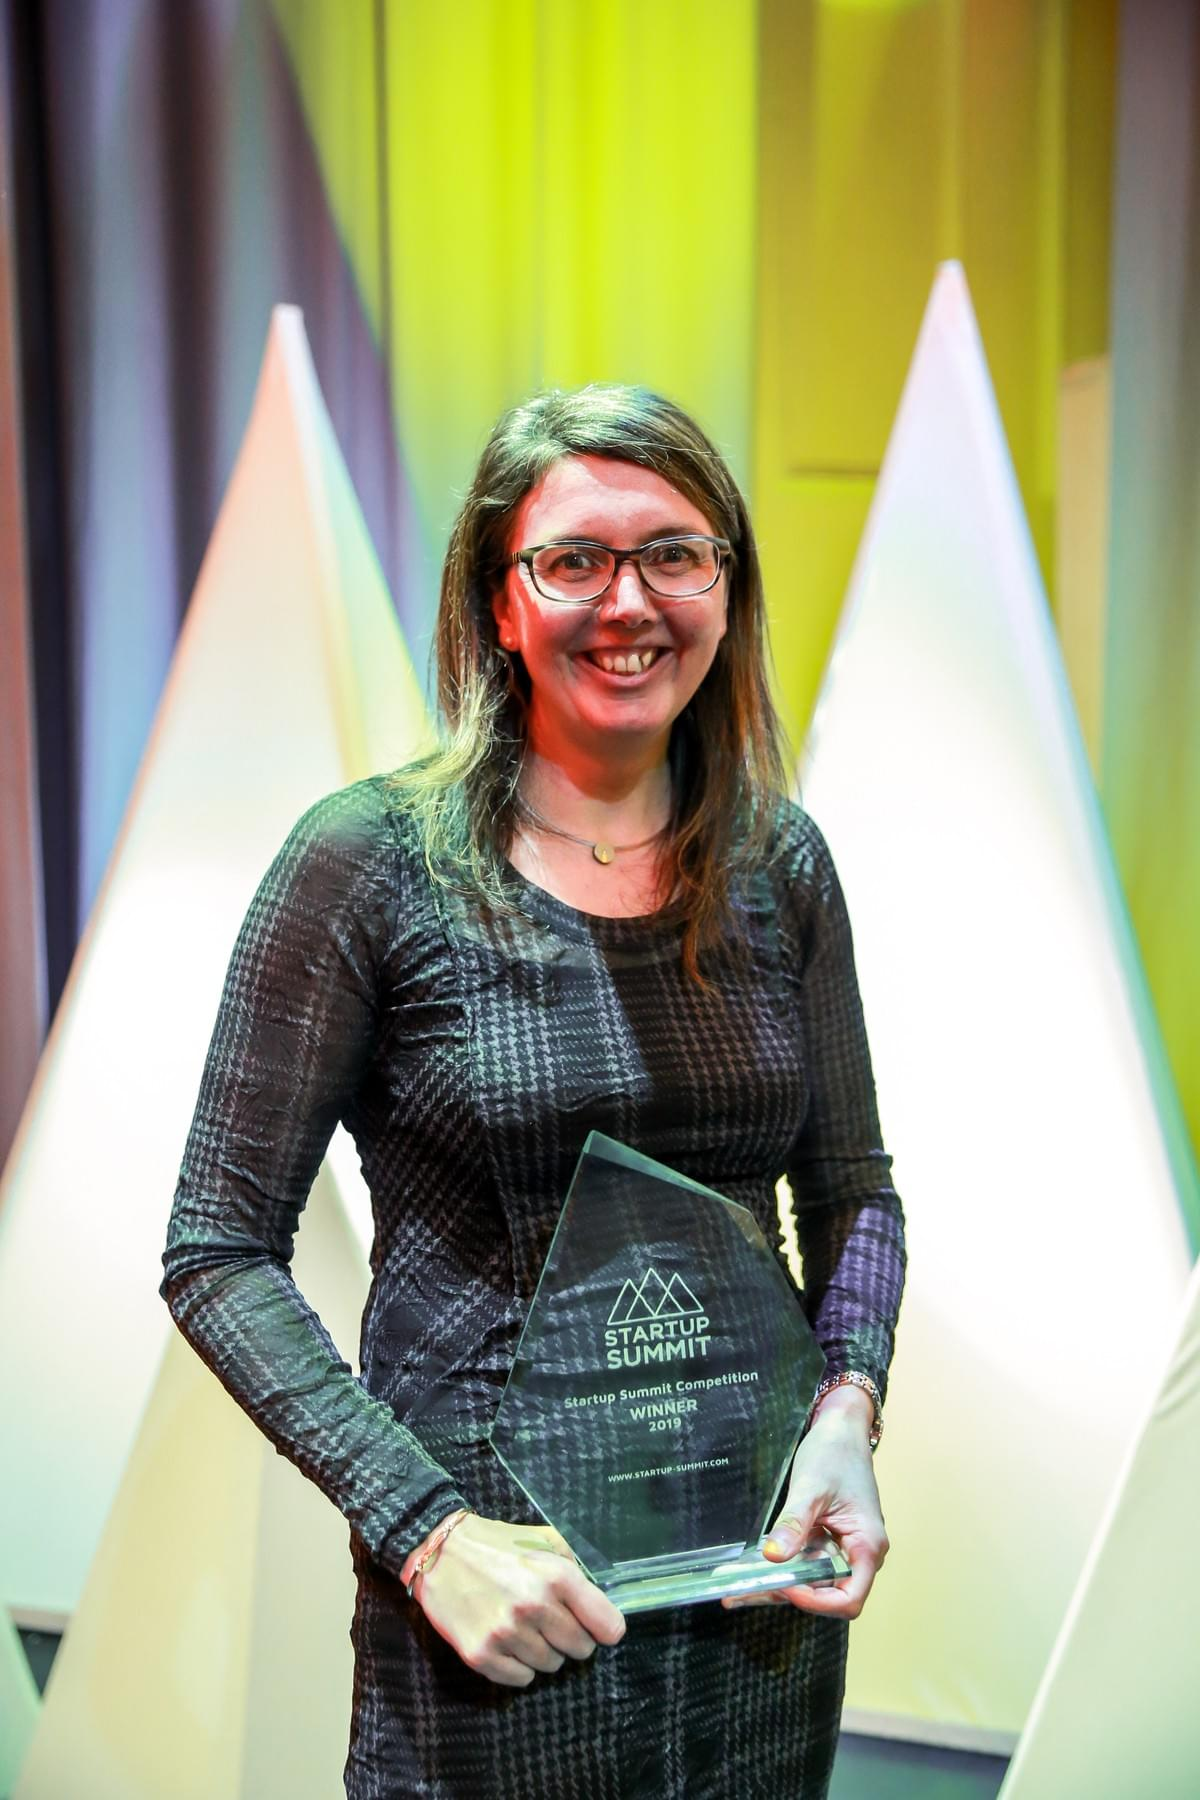 Startup Summit Competition 2019 winner: Dr Elizabeth Fairley, Co-founder & COO, Talking Medicines